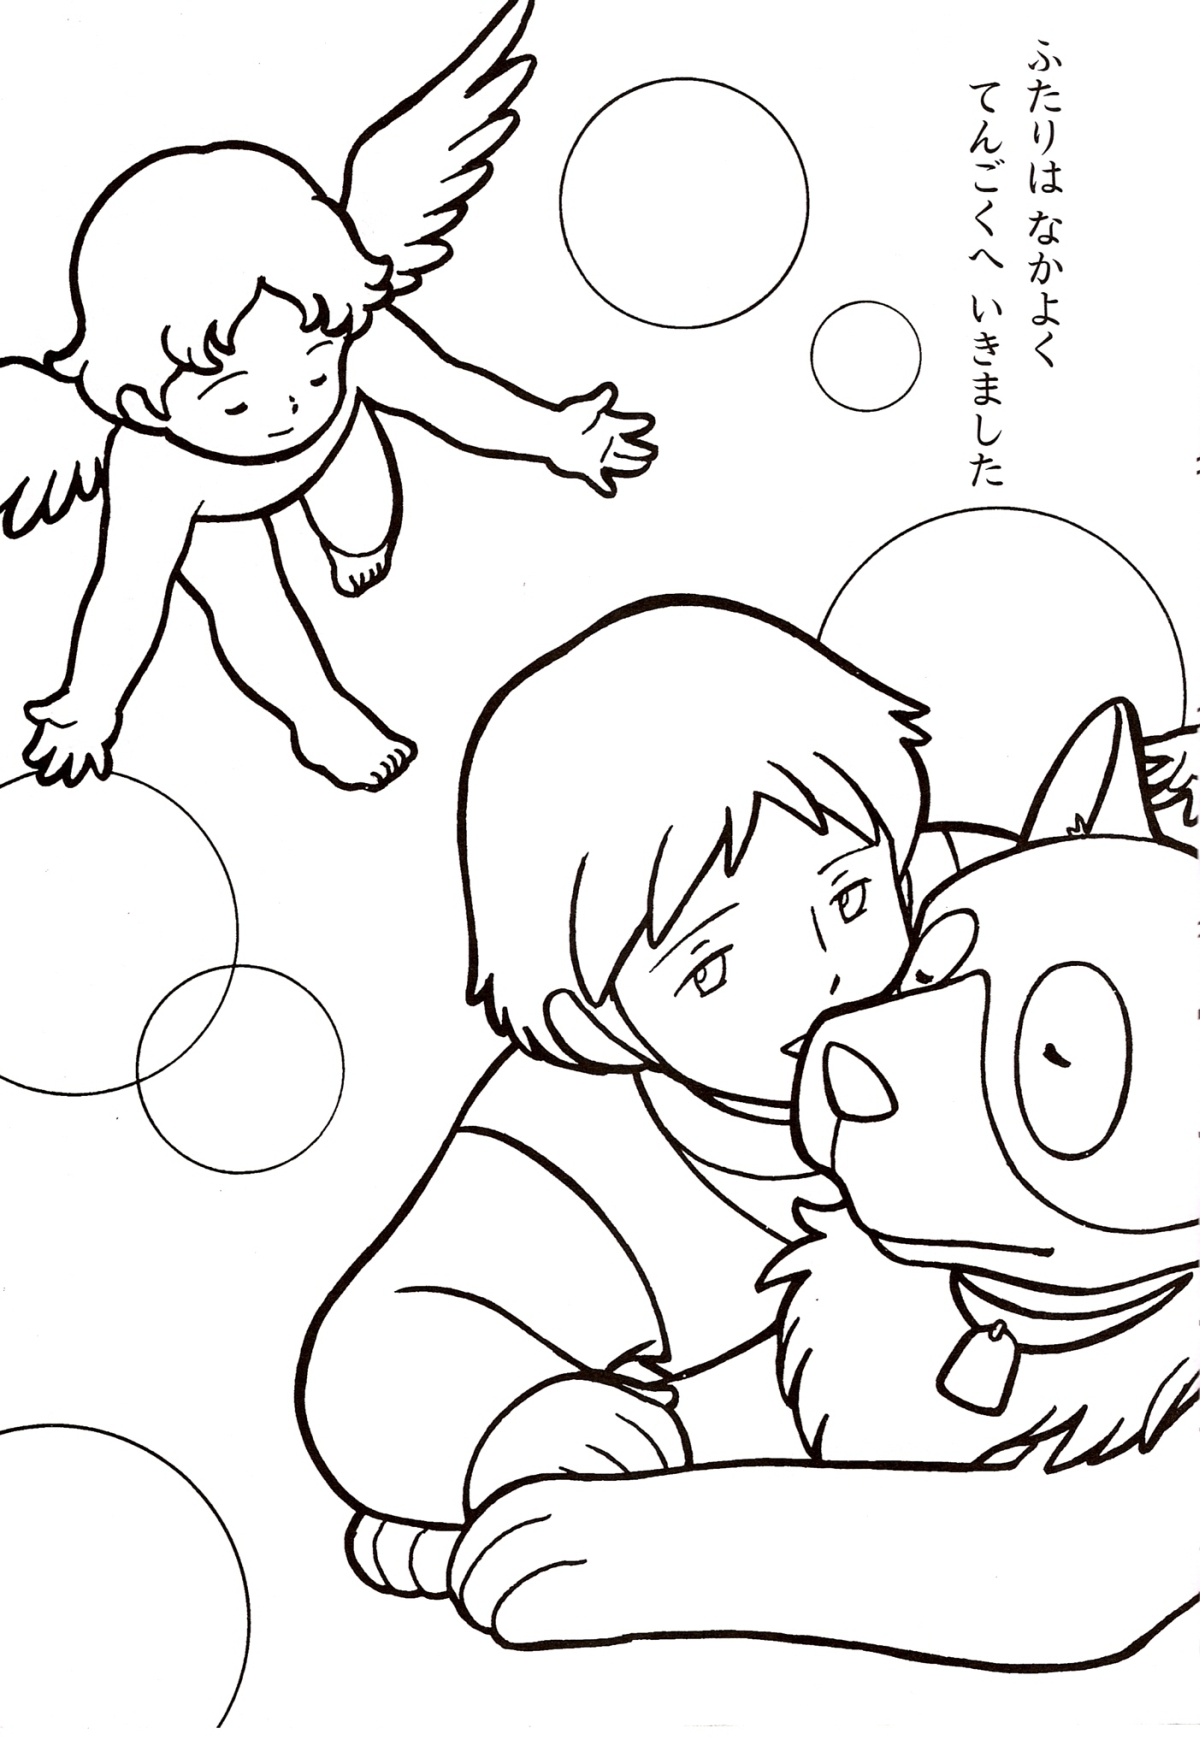 Anime Dog Coloring Pages